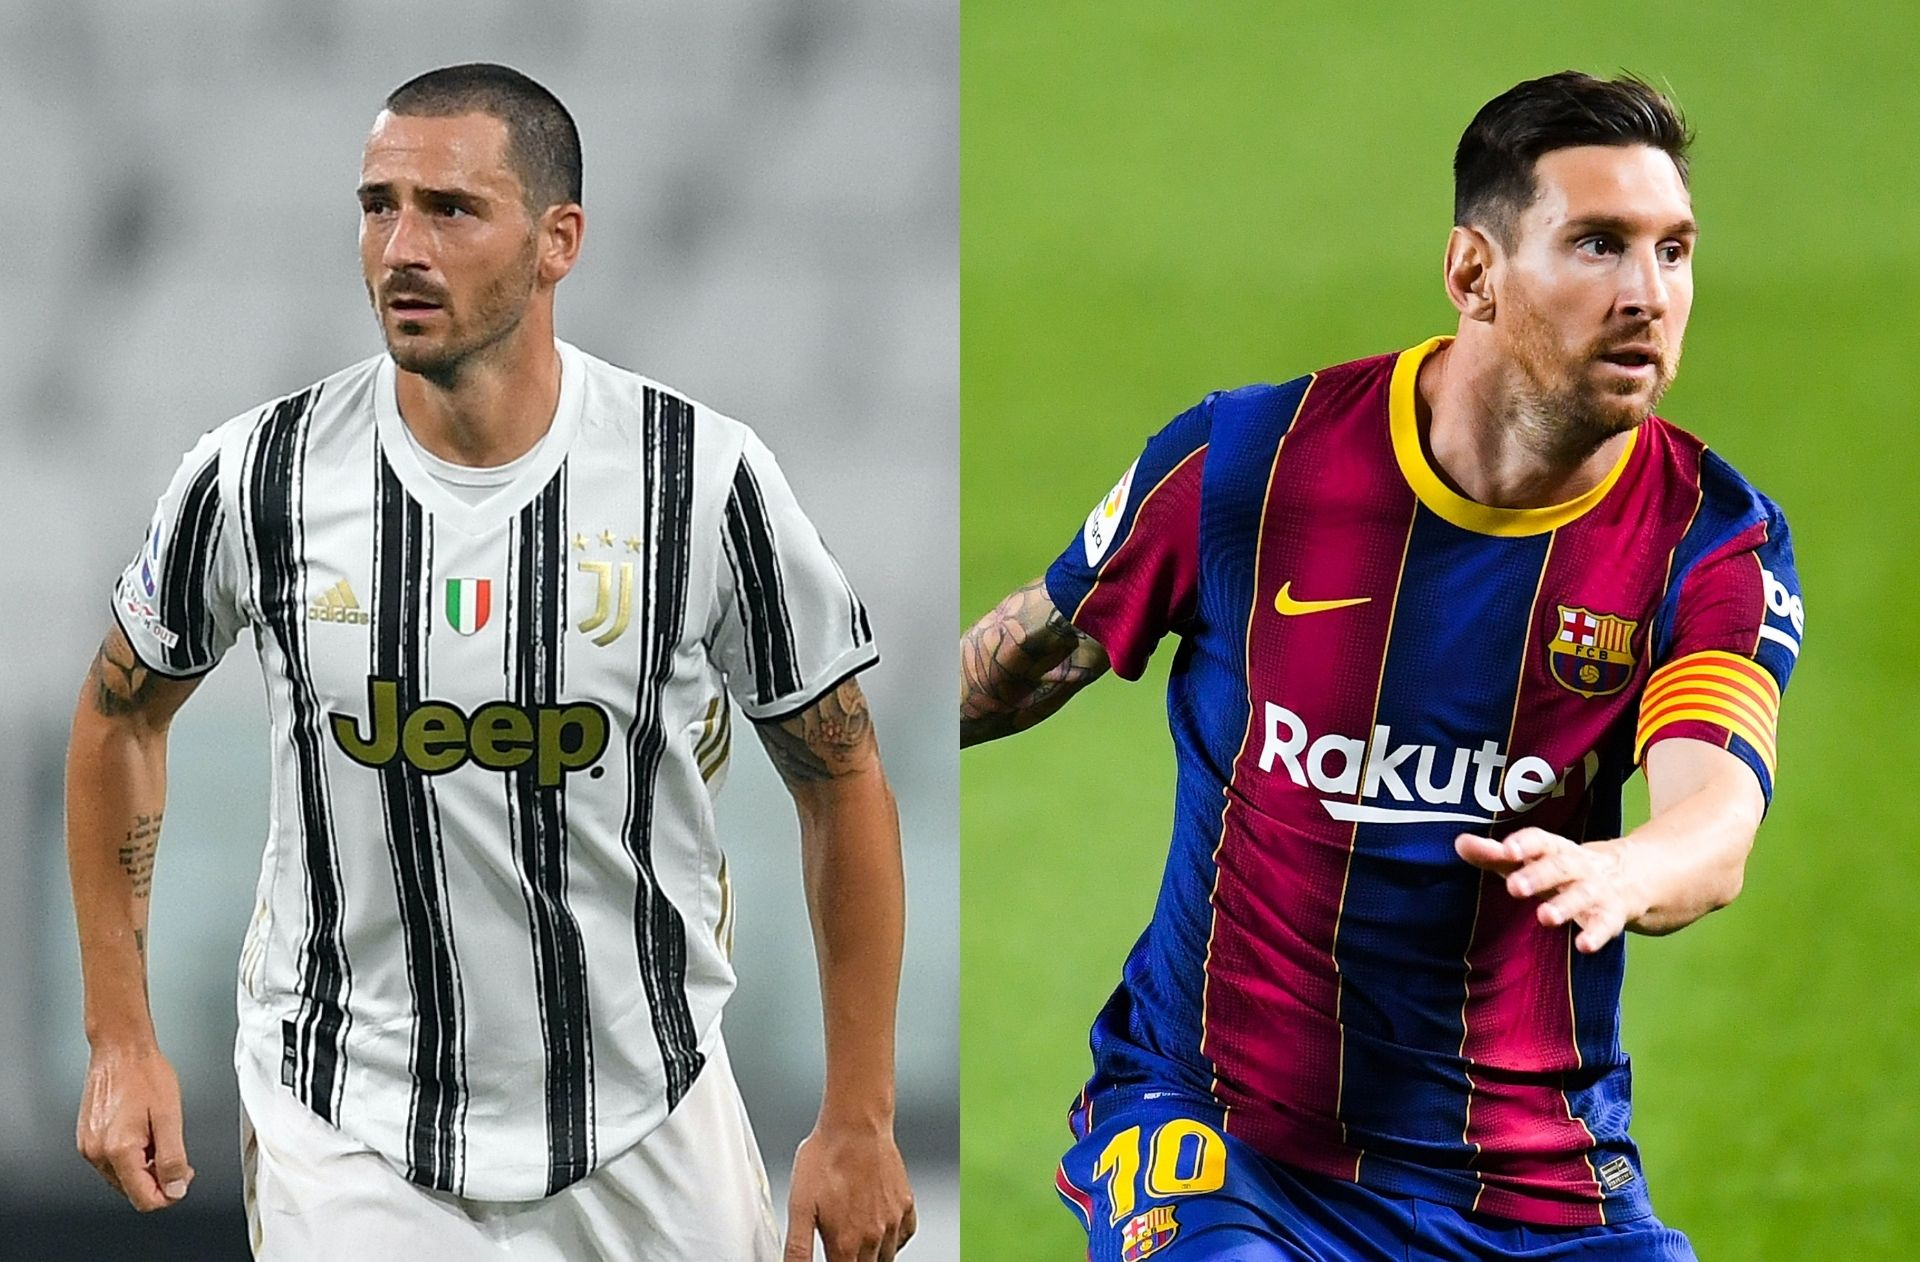 juventus vs fc barcelona preview betting tips stats prediction juventus vs fc barcelona preview